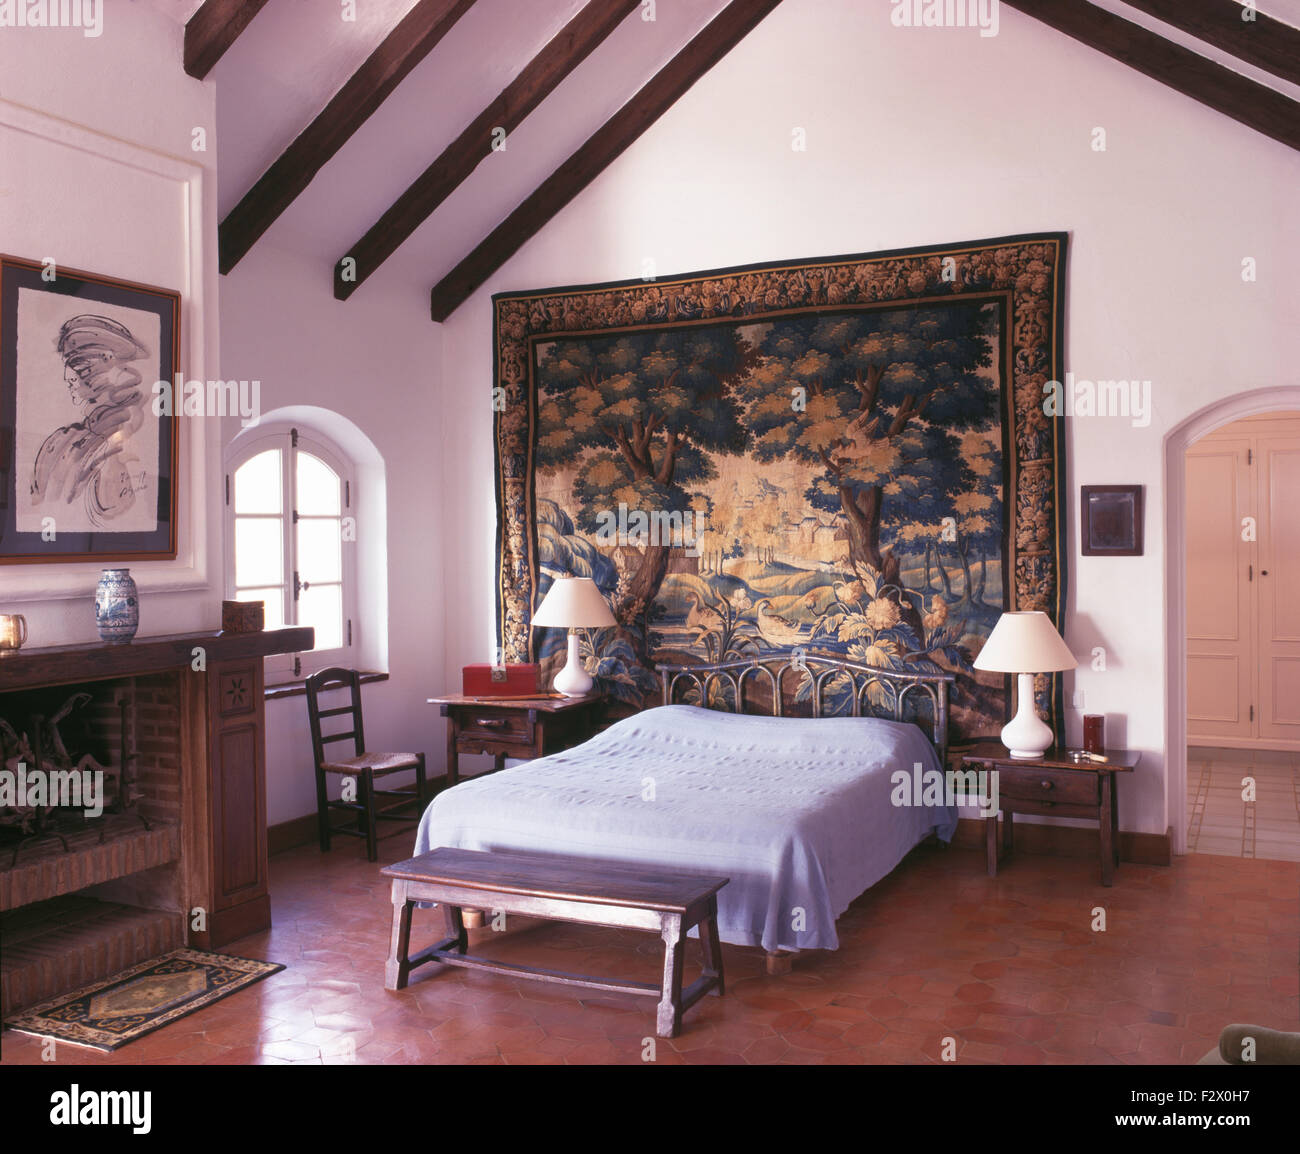 bedroom tapestry. Large antique tapestry behind bed in white Spanish country bedroom with a  terracotta tiled floor